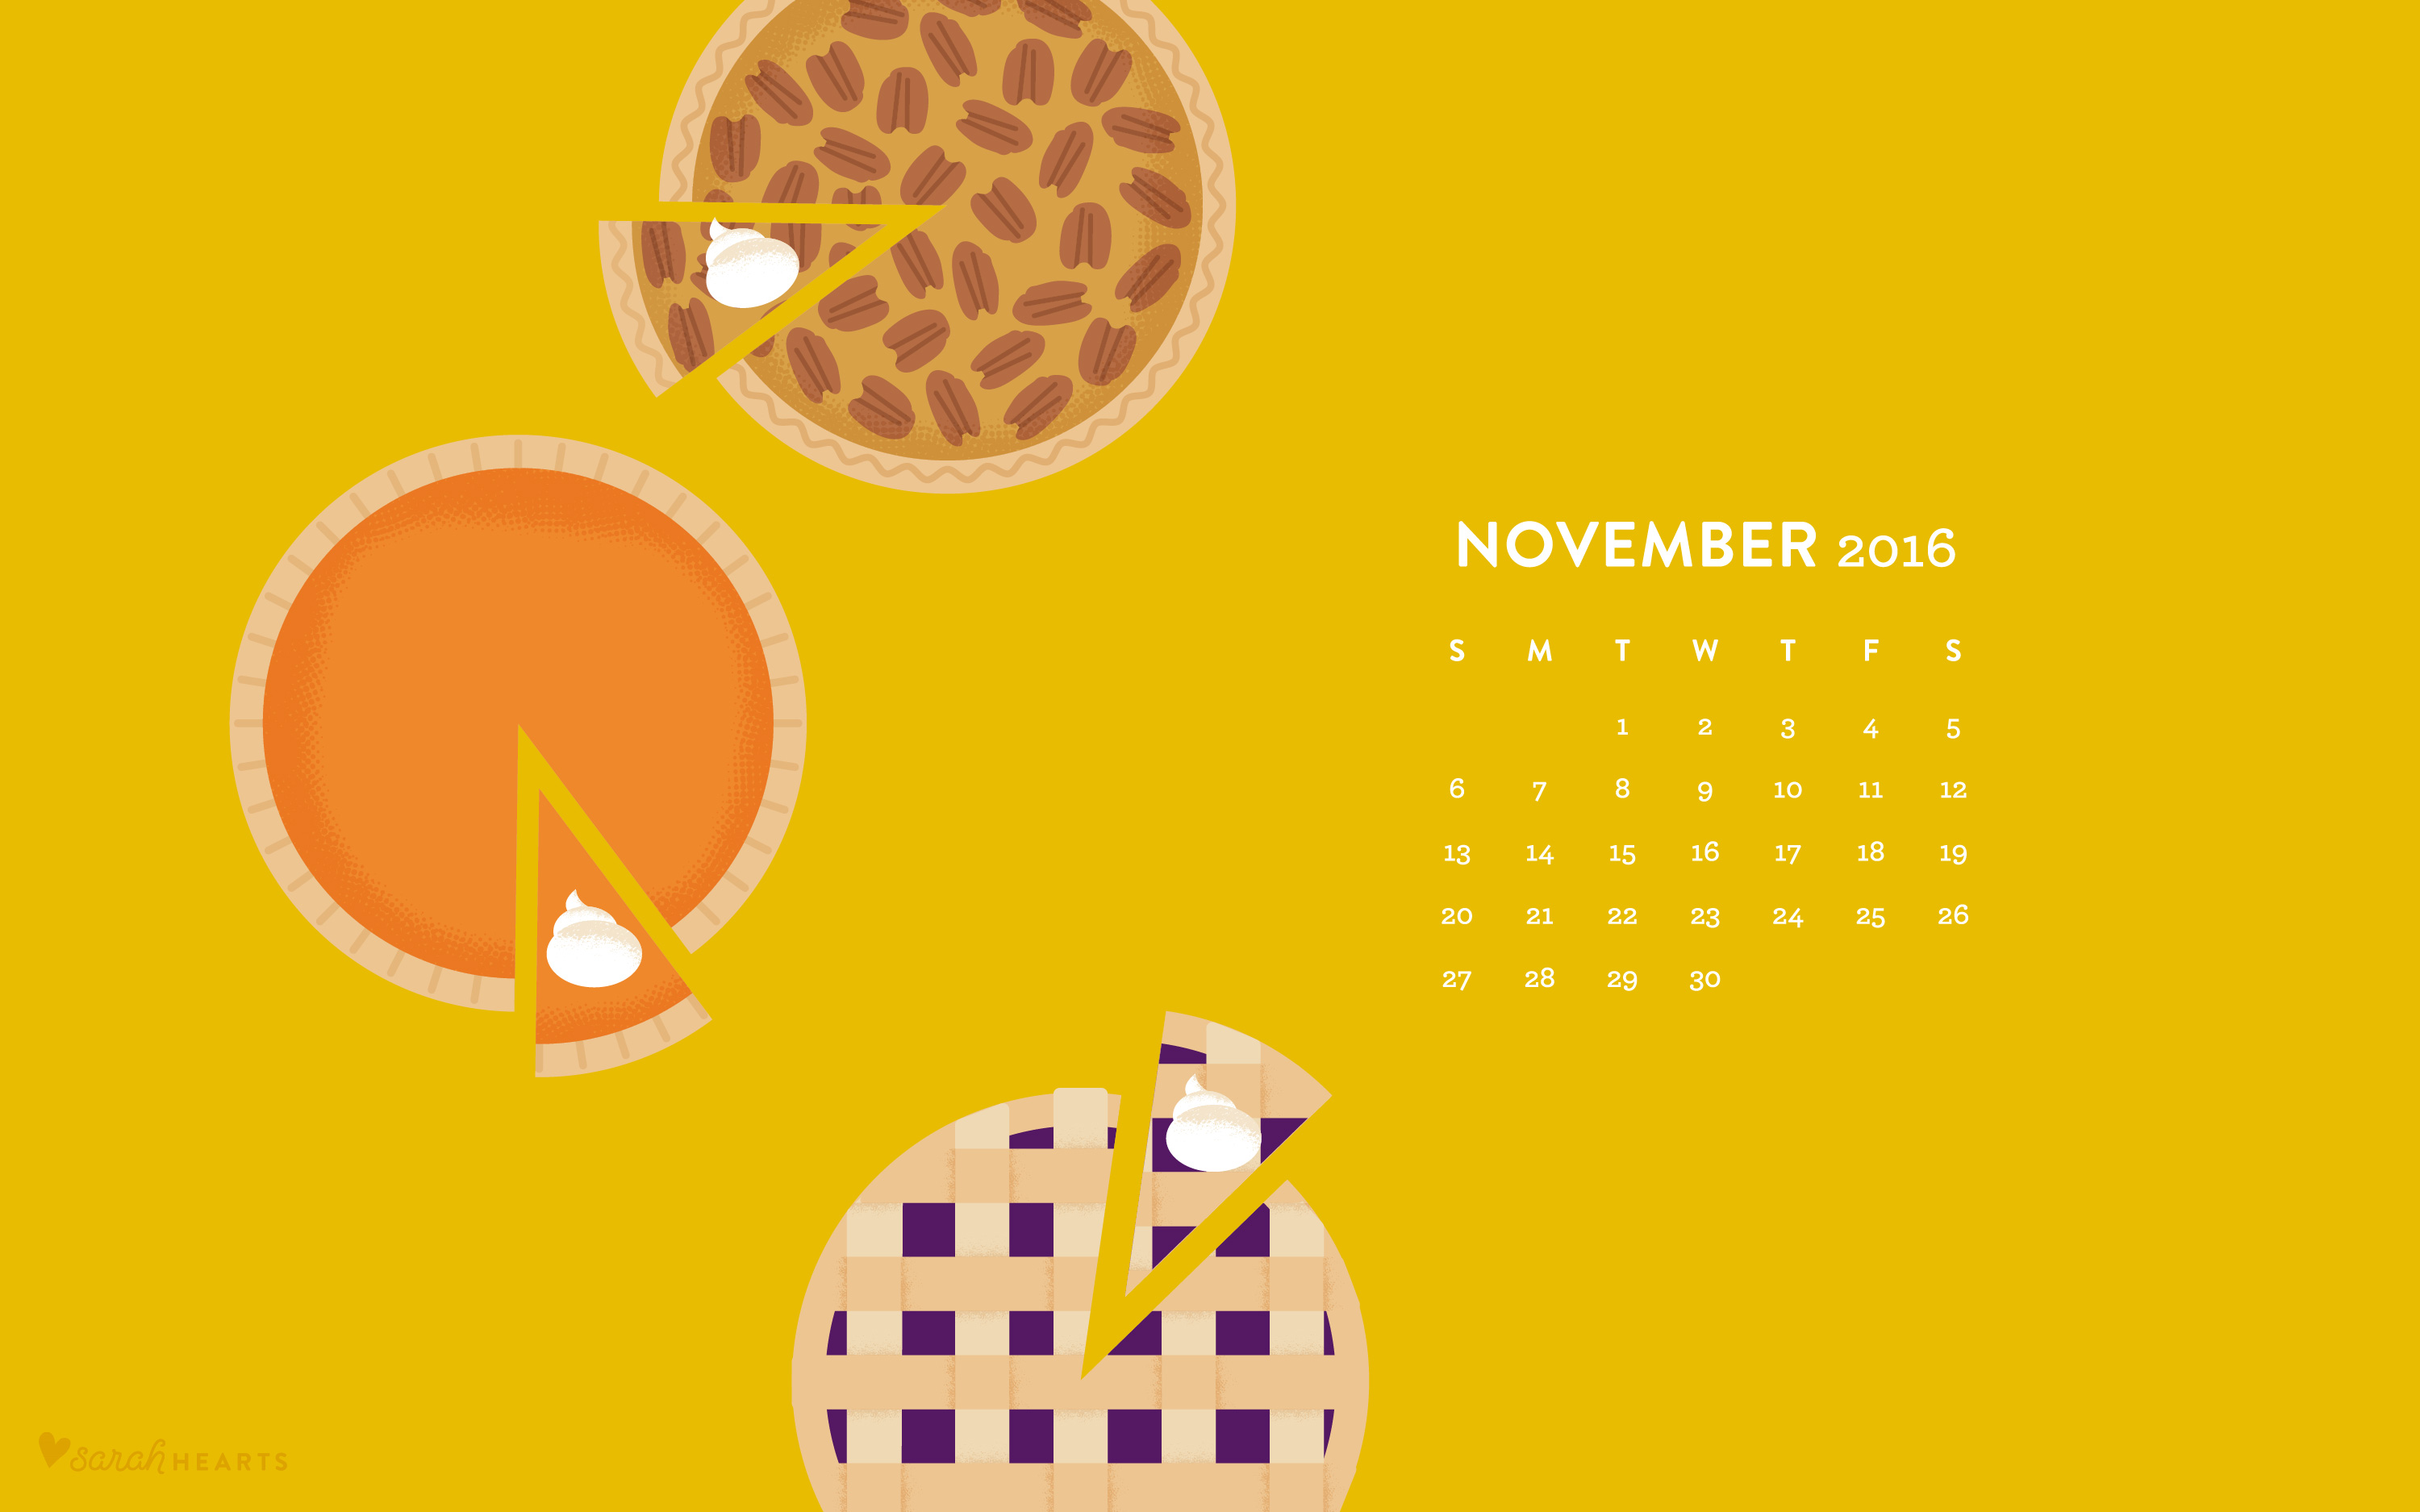 Free Desktop Calendar Wallpaper November : Thanksgiving calendar wallpaper collection